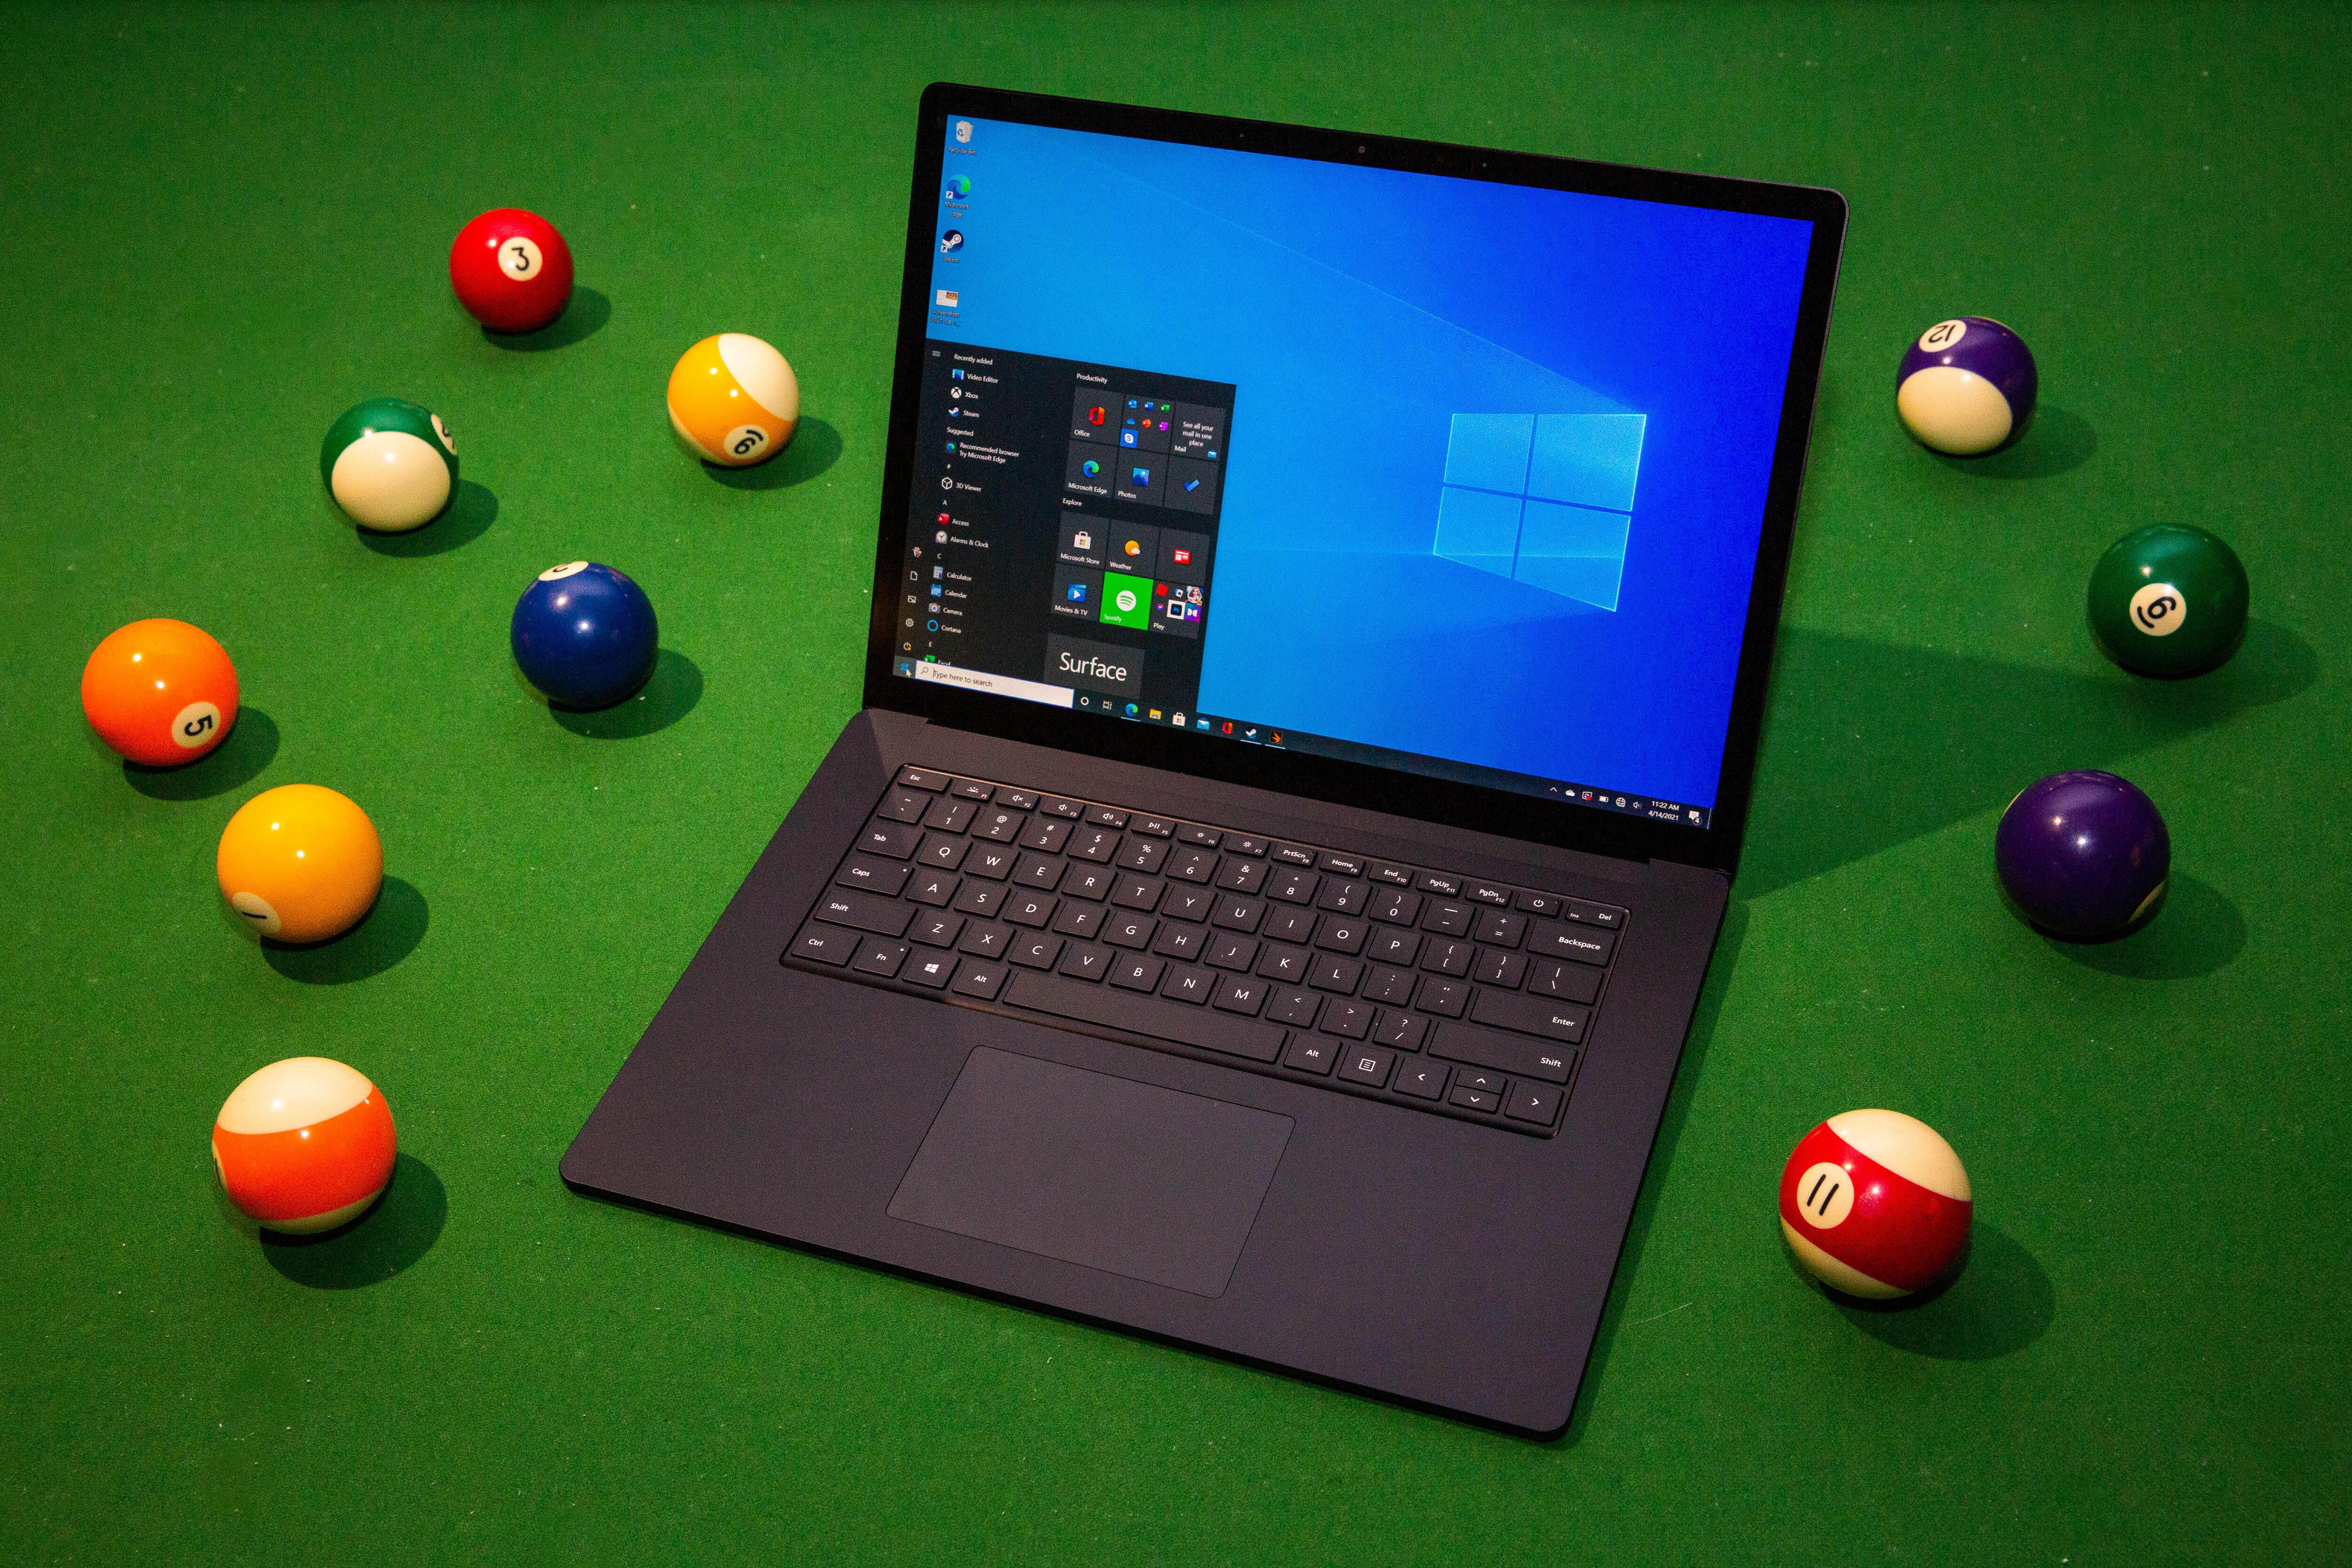 windows-laptop-how-to-tech-tip-cnet-2021-microsoft-surface-laptop-4-2021-start-page-windows-product